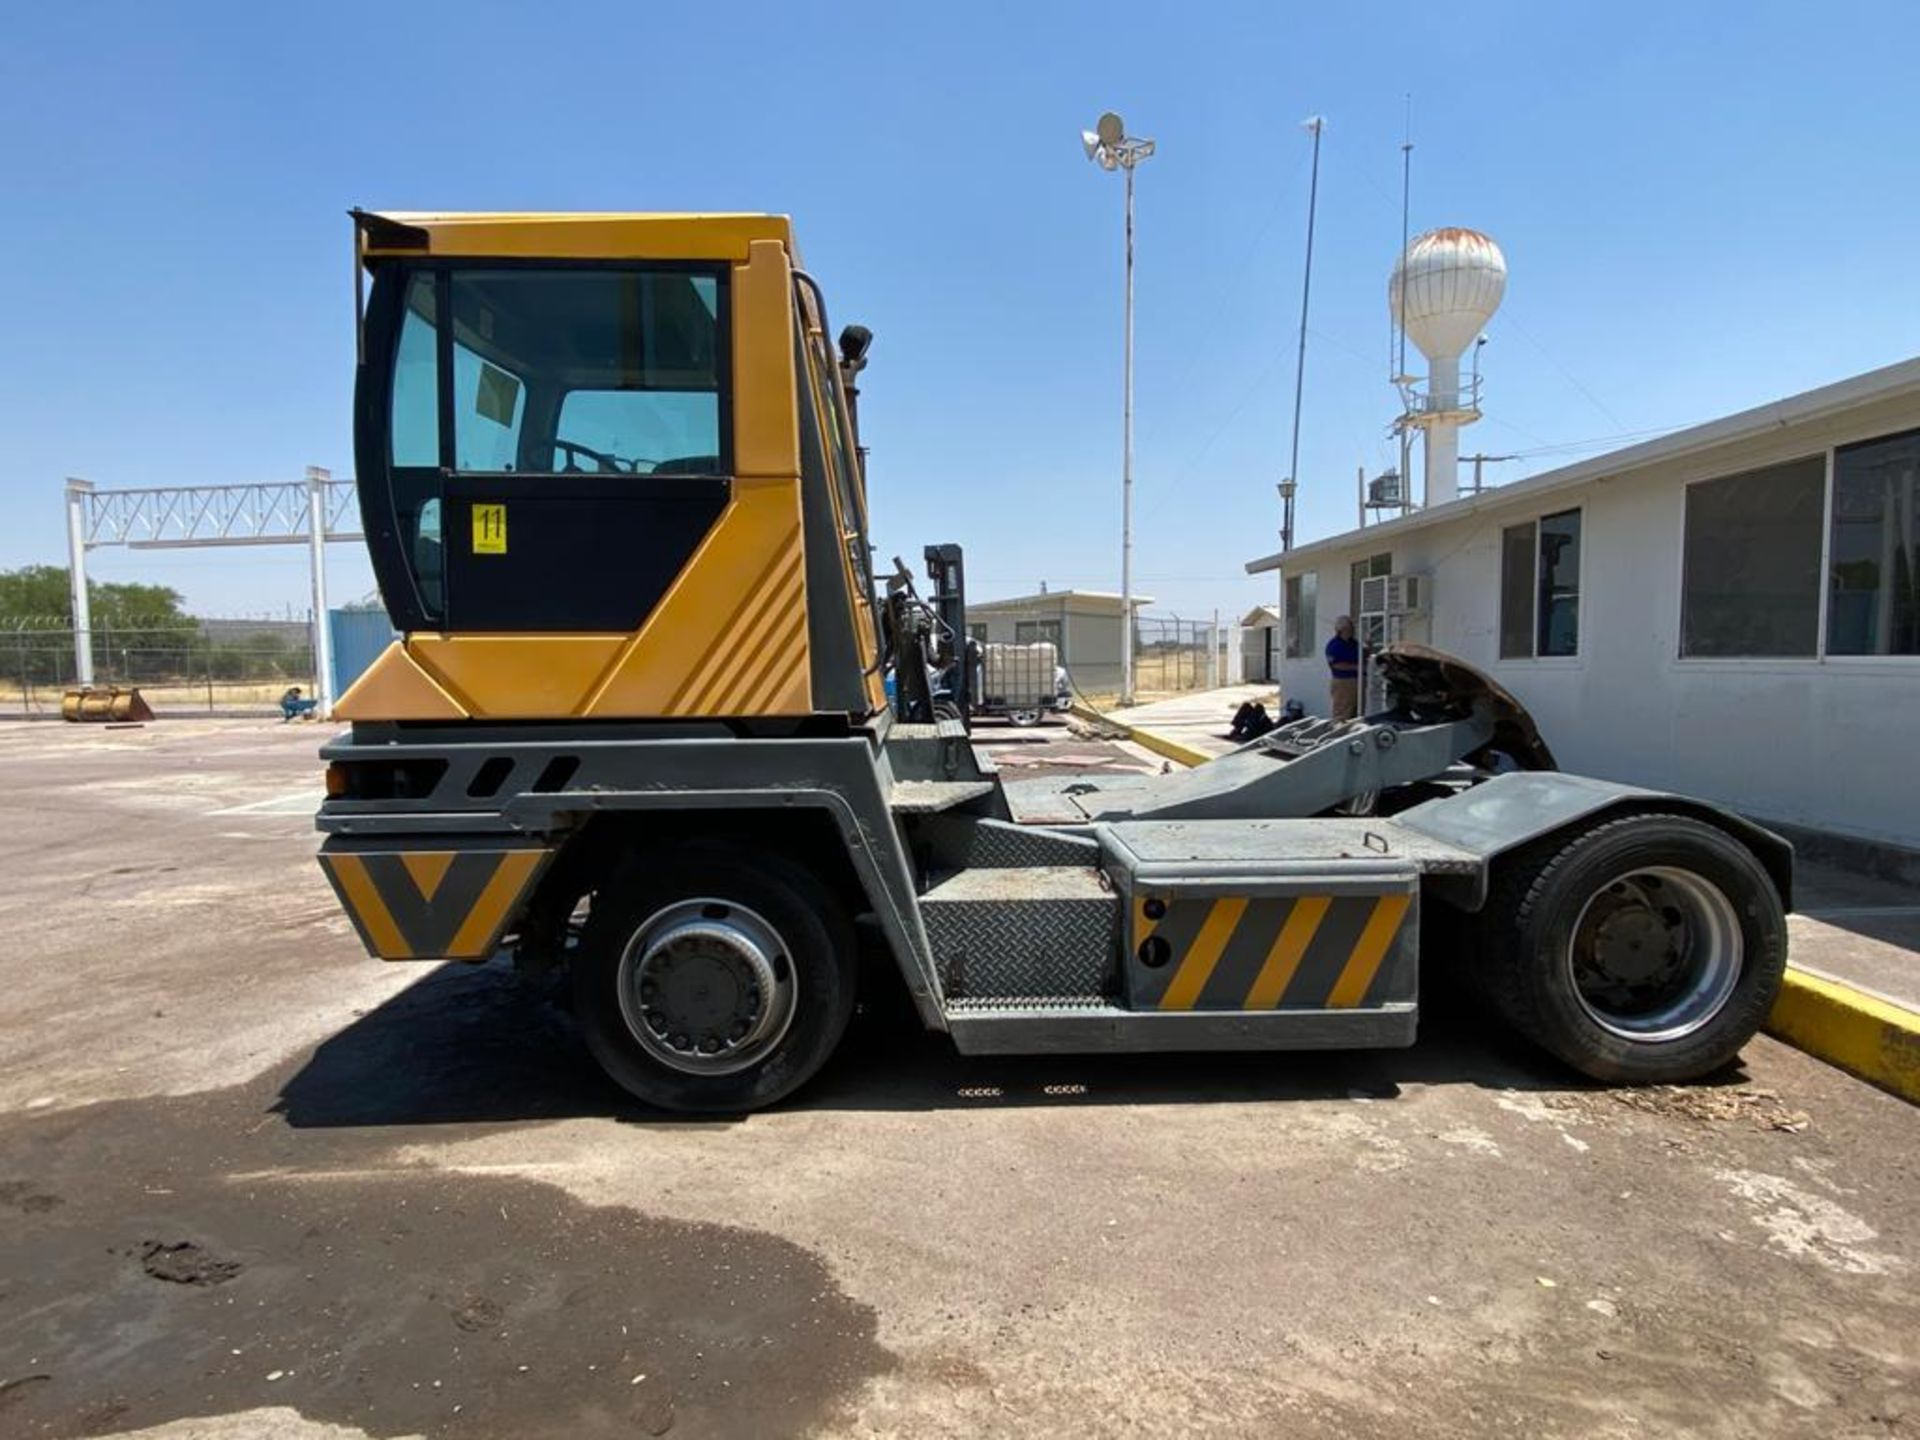 Terberg Capacity 2002 Terminal Tractor, automatic transmission, with Volvo motor - Image 9 of 57